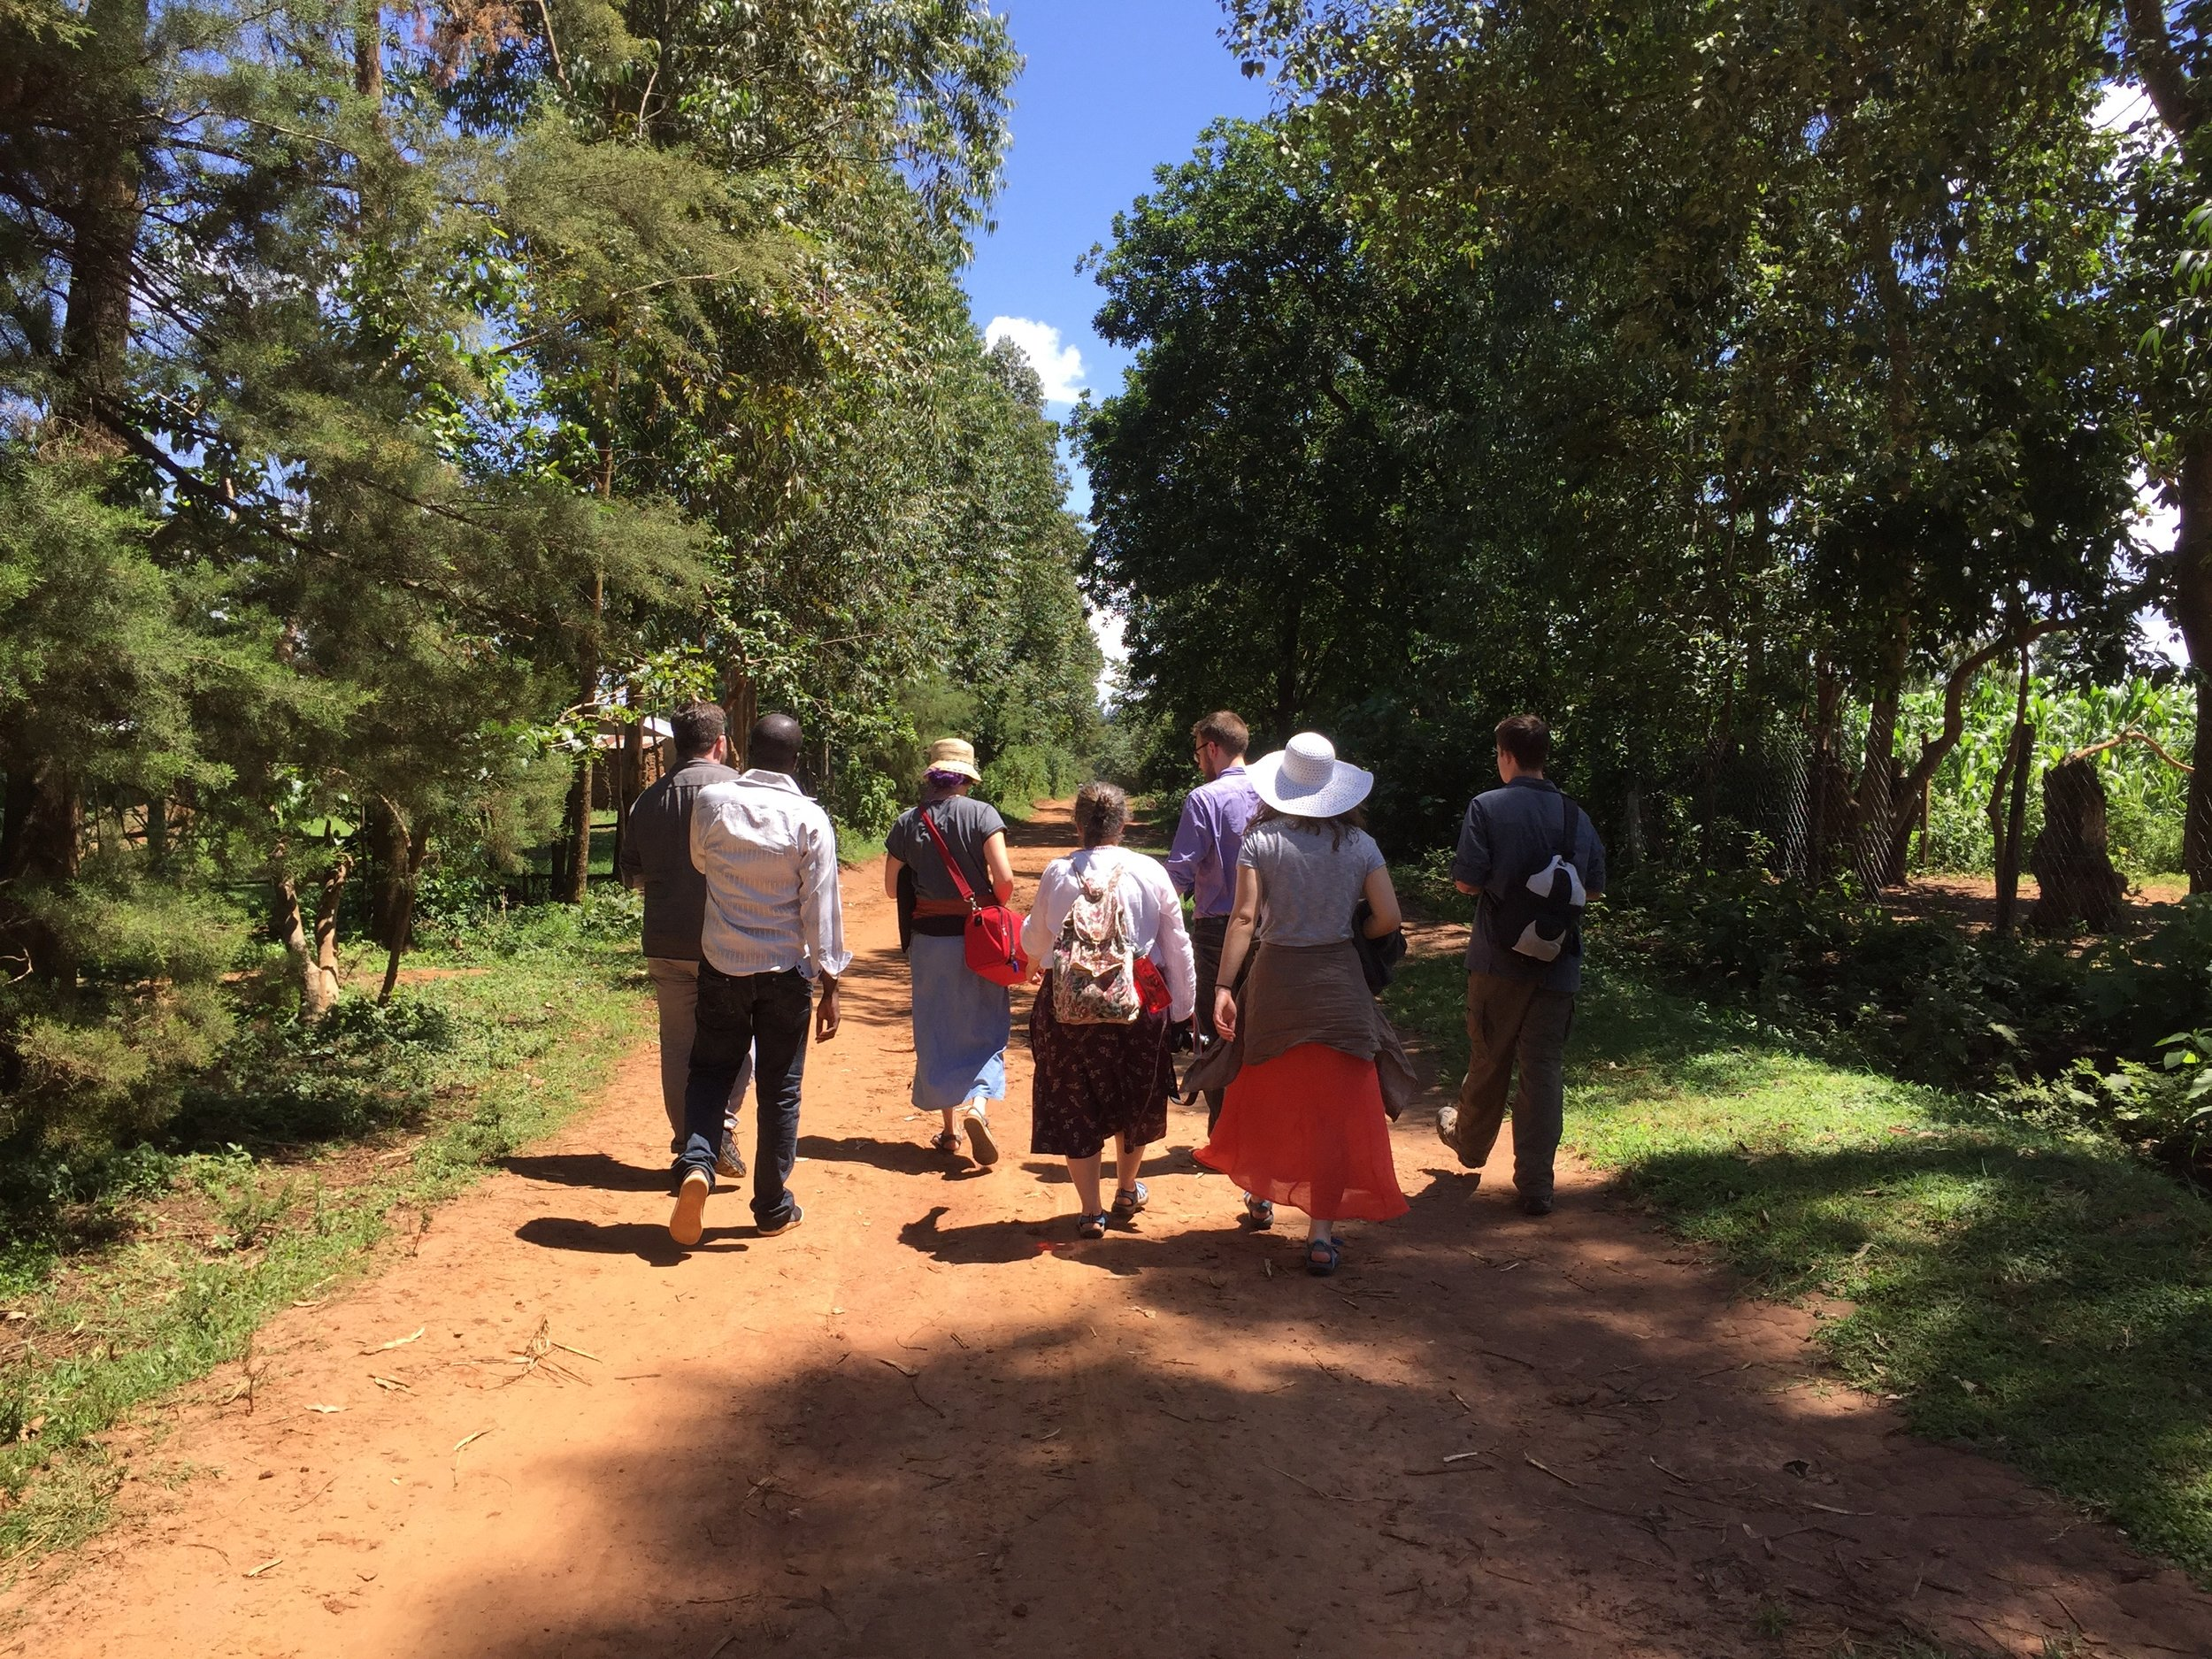 After a wonderful first day at HIP, the OWC team heads back to Livingstone's parents house who were kind enough to offer lodging.